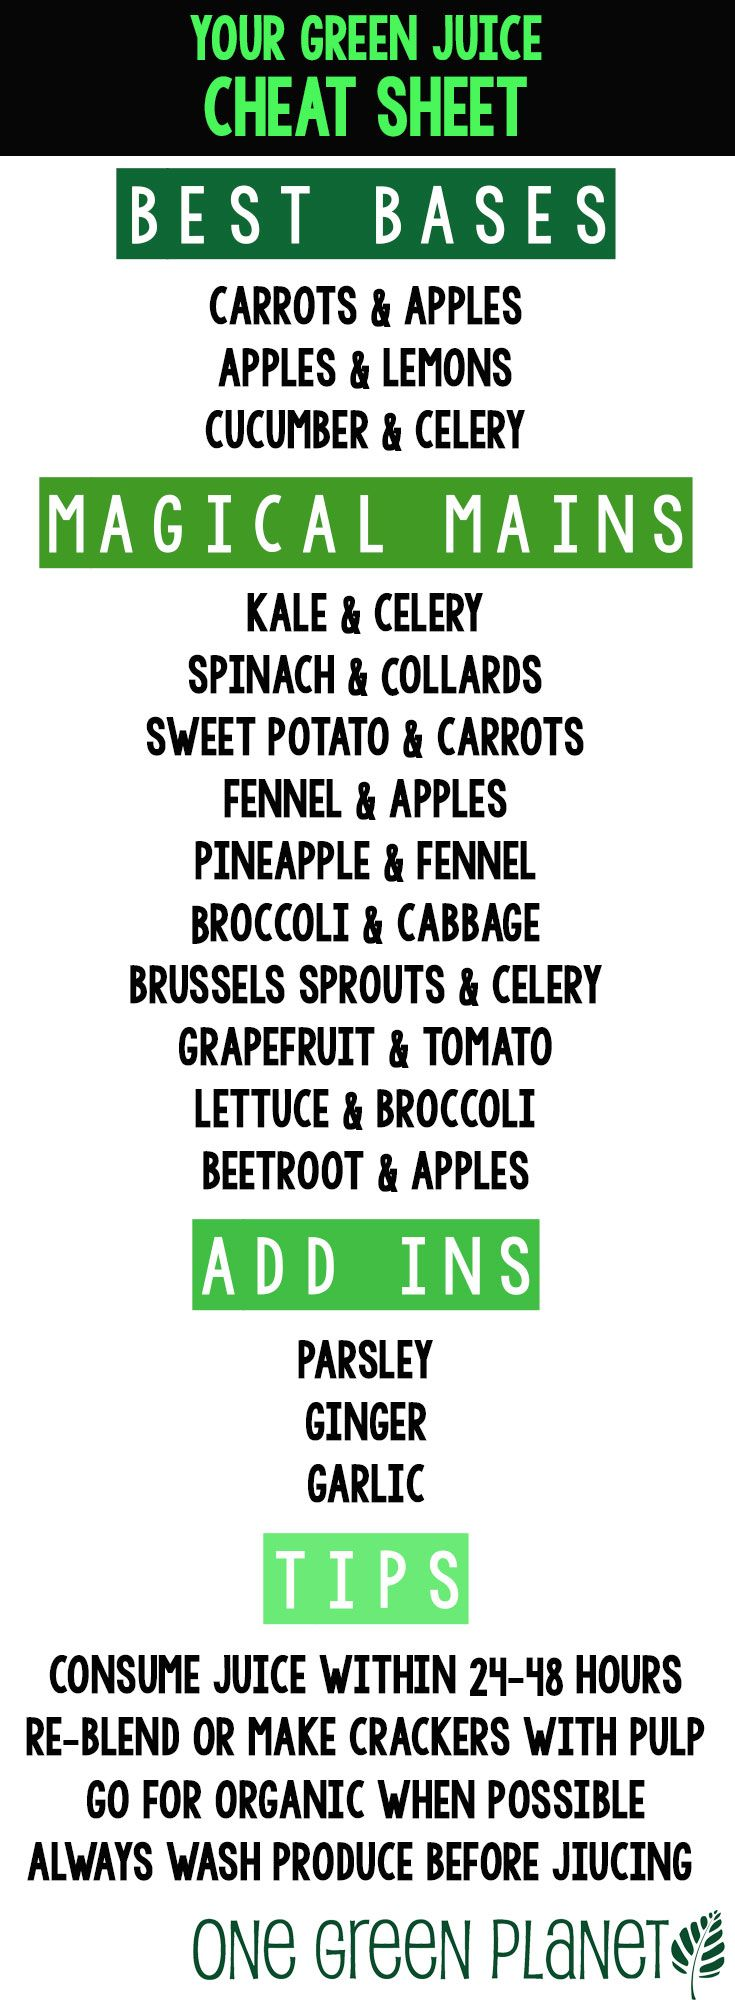 The Ultimate Green Juice Cheat Sheet http://onegr.pl/1rtHKMz